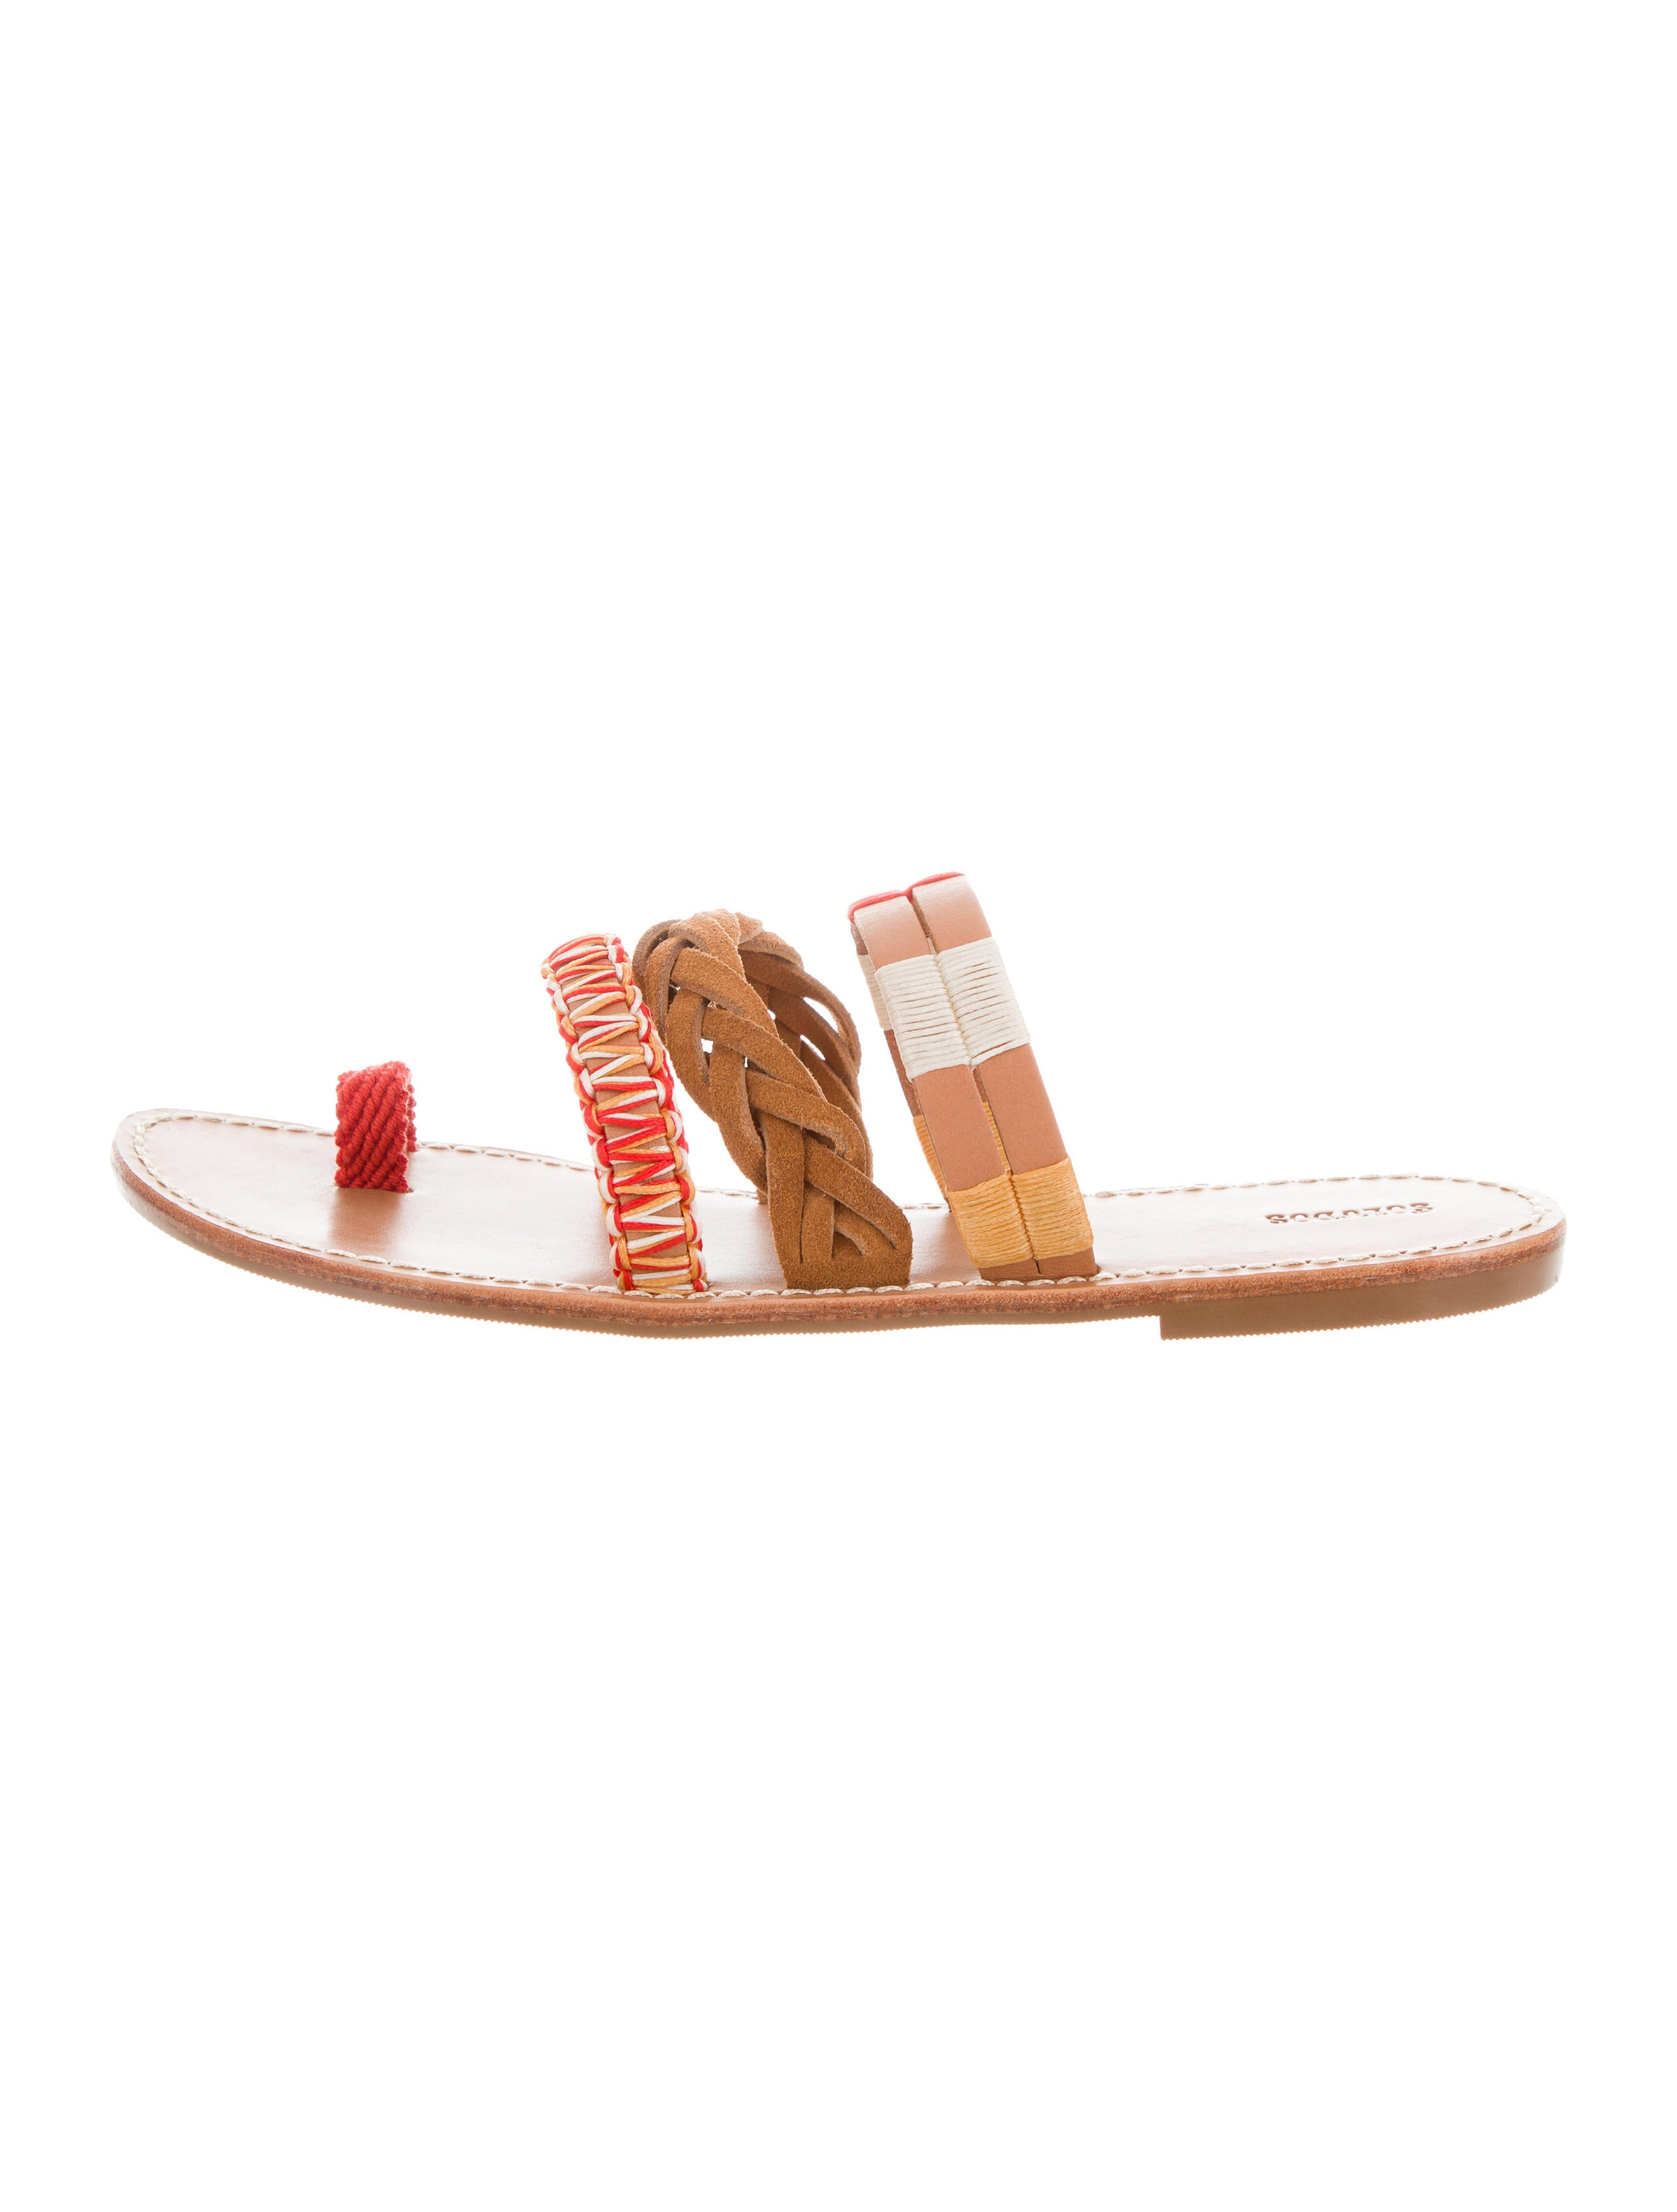 perfect for sale Soludos Multistrap Braided Sandals w/ Tags sast cheap online buy cheap marketable sale release dates jiFyOF